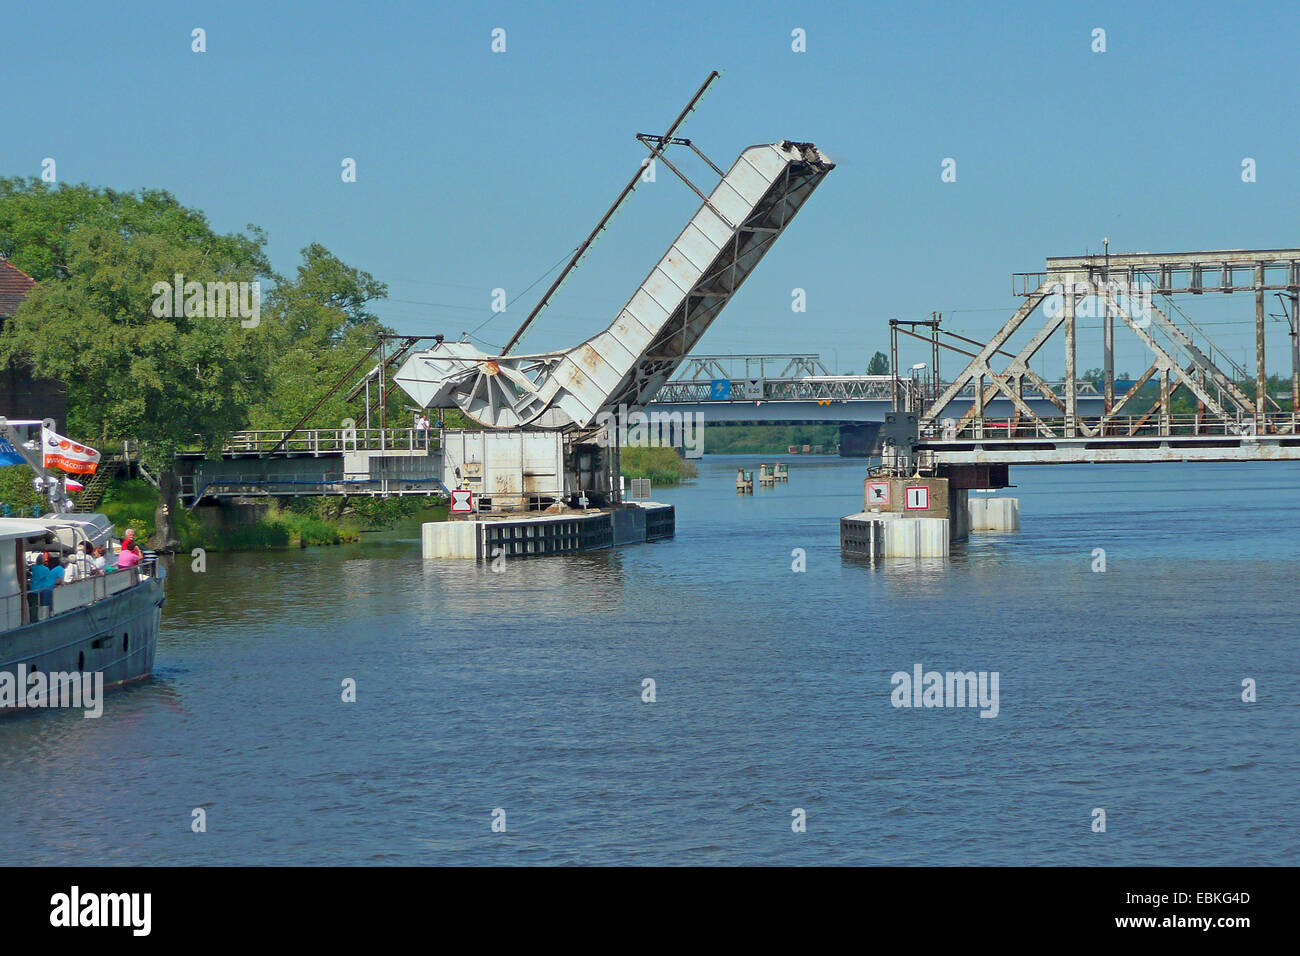 old bascule bridge crossing Oder river, Poland, Poland, Podjuchy - Stock Image